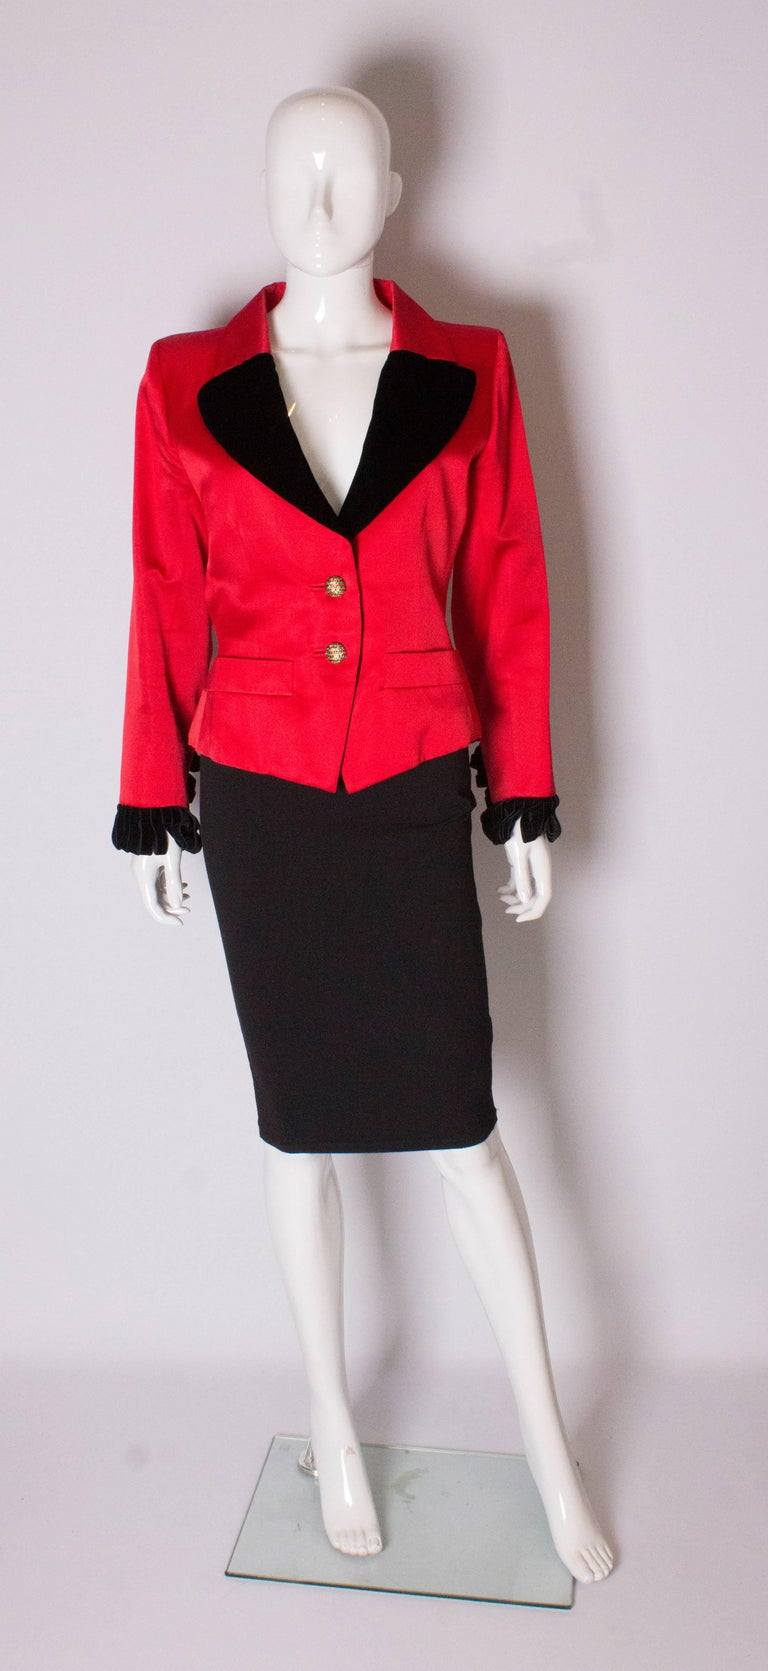 A red evening jacket by Yves Saint Laurent Rive Gauche. The red jacket has a red and black collar with black velvet frill cuffs and velvet ties at the back. It has a two button opening and pockets at waist level.